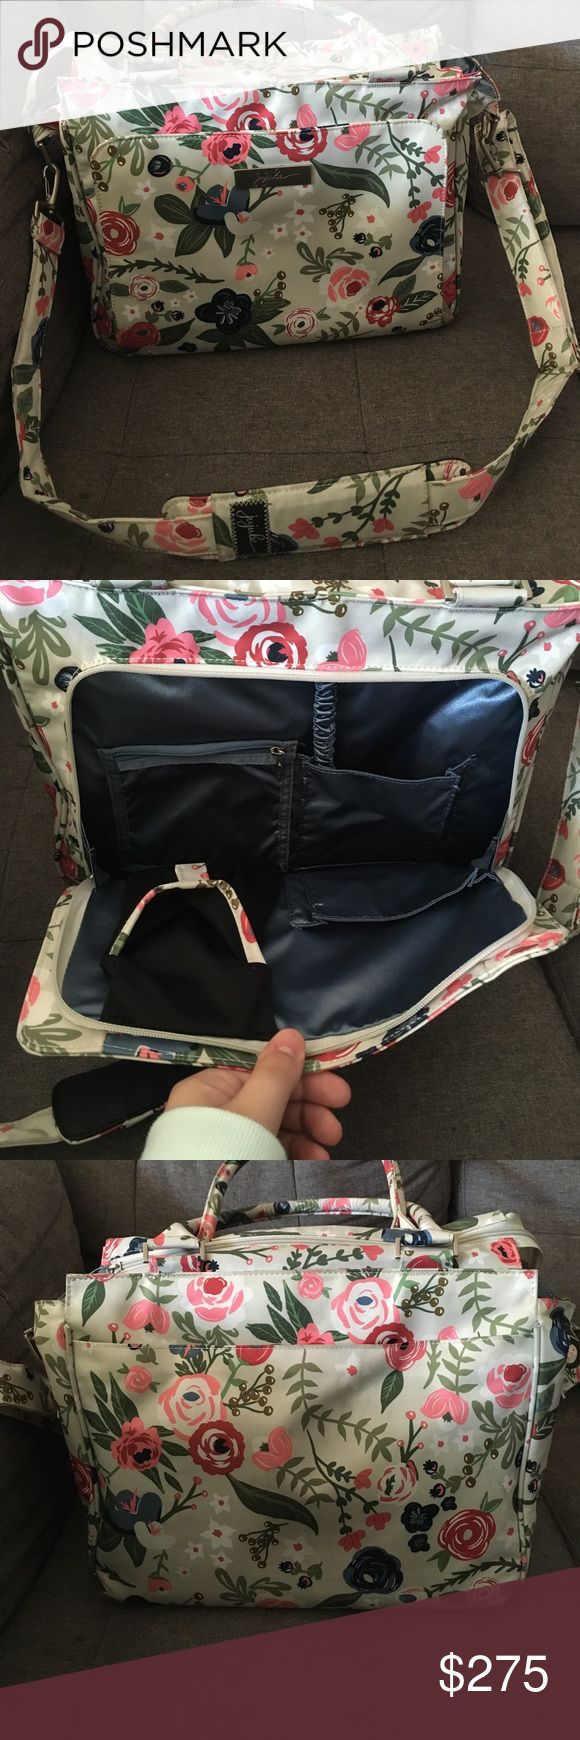 JuJuBe Rosy Posy Be Classy Beautiful, limited edition bag. I love this bag but am looking to get the BRB in this print. Excellent used condition. jujube Bags Baby Bags